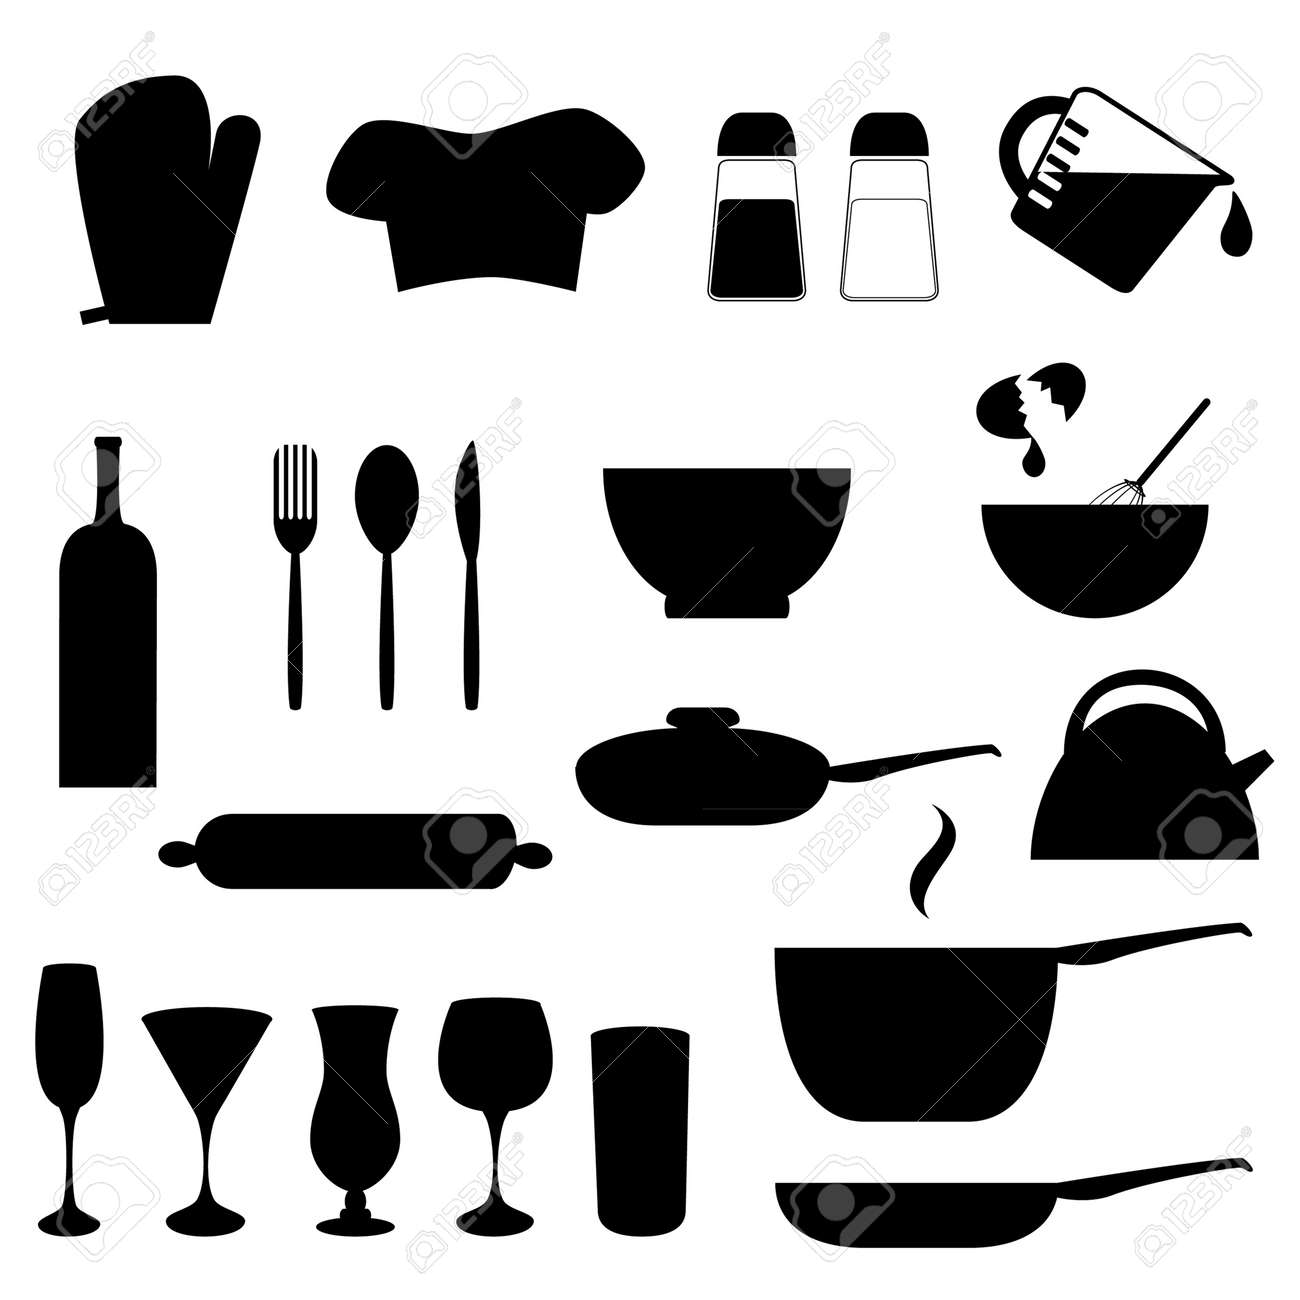 Various Kitchen Utensils In Silhouette Royalty Free Cliparts ...